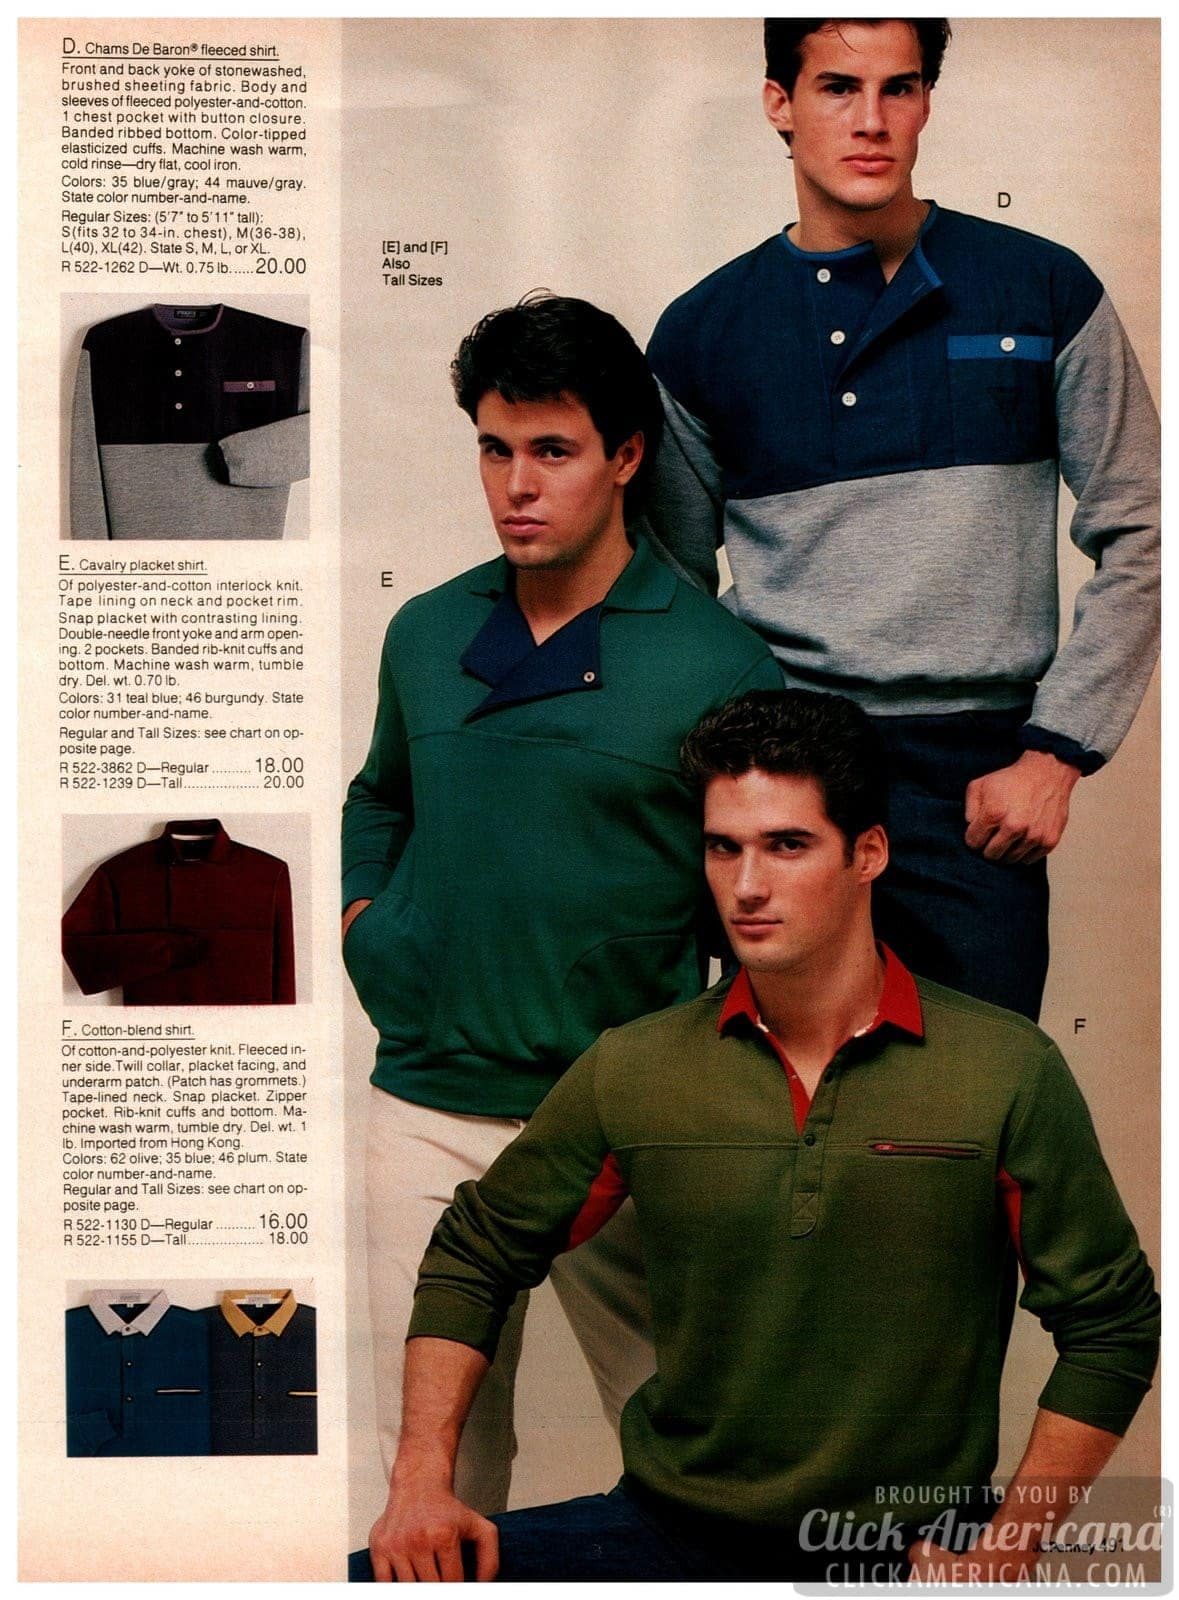 Fleeced shirts, sweatshirts and other outwear, plus cotton-blend shirts with contrasting color collars